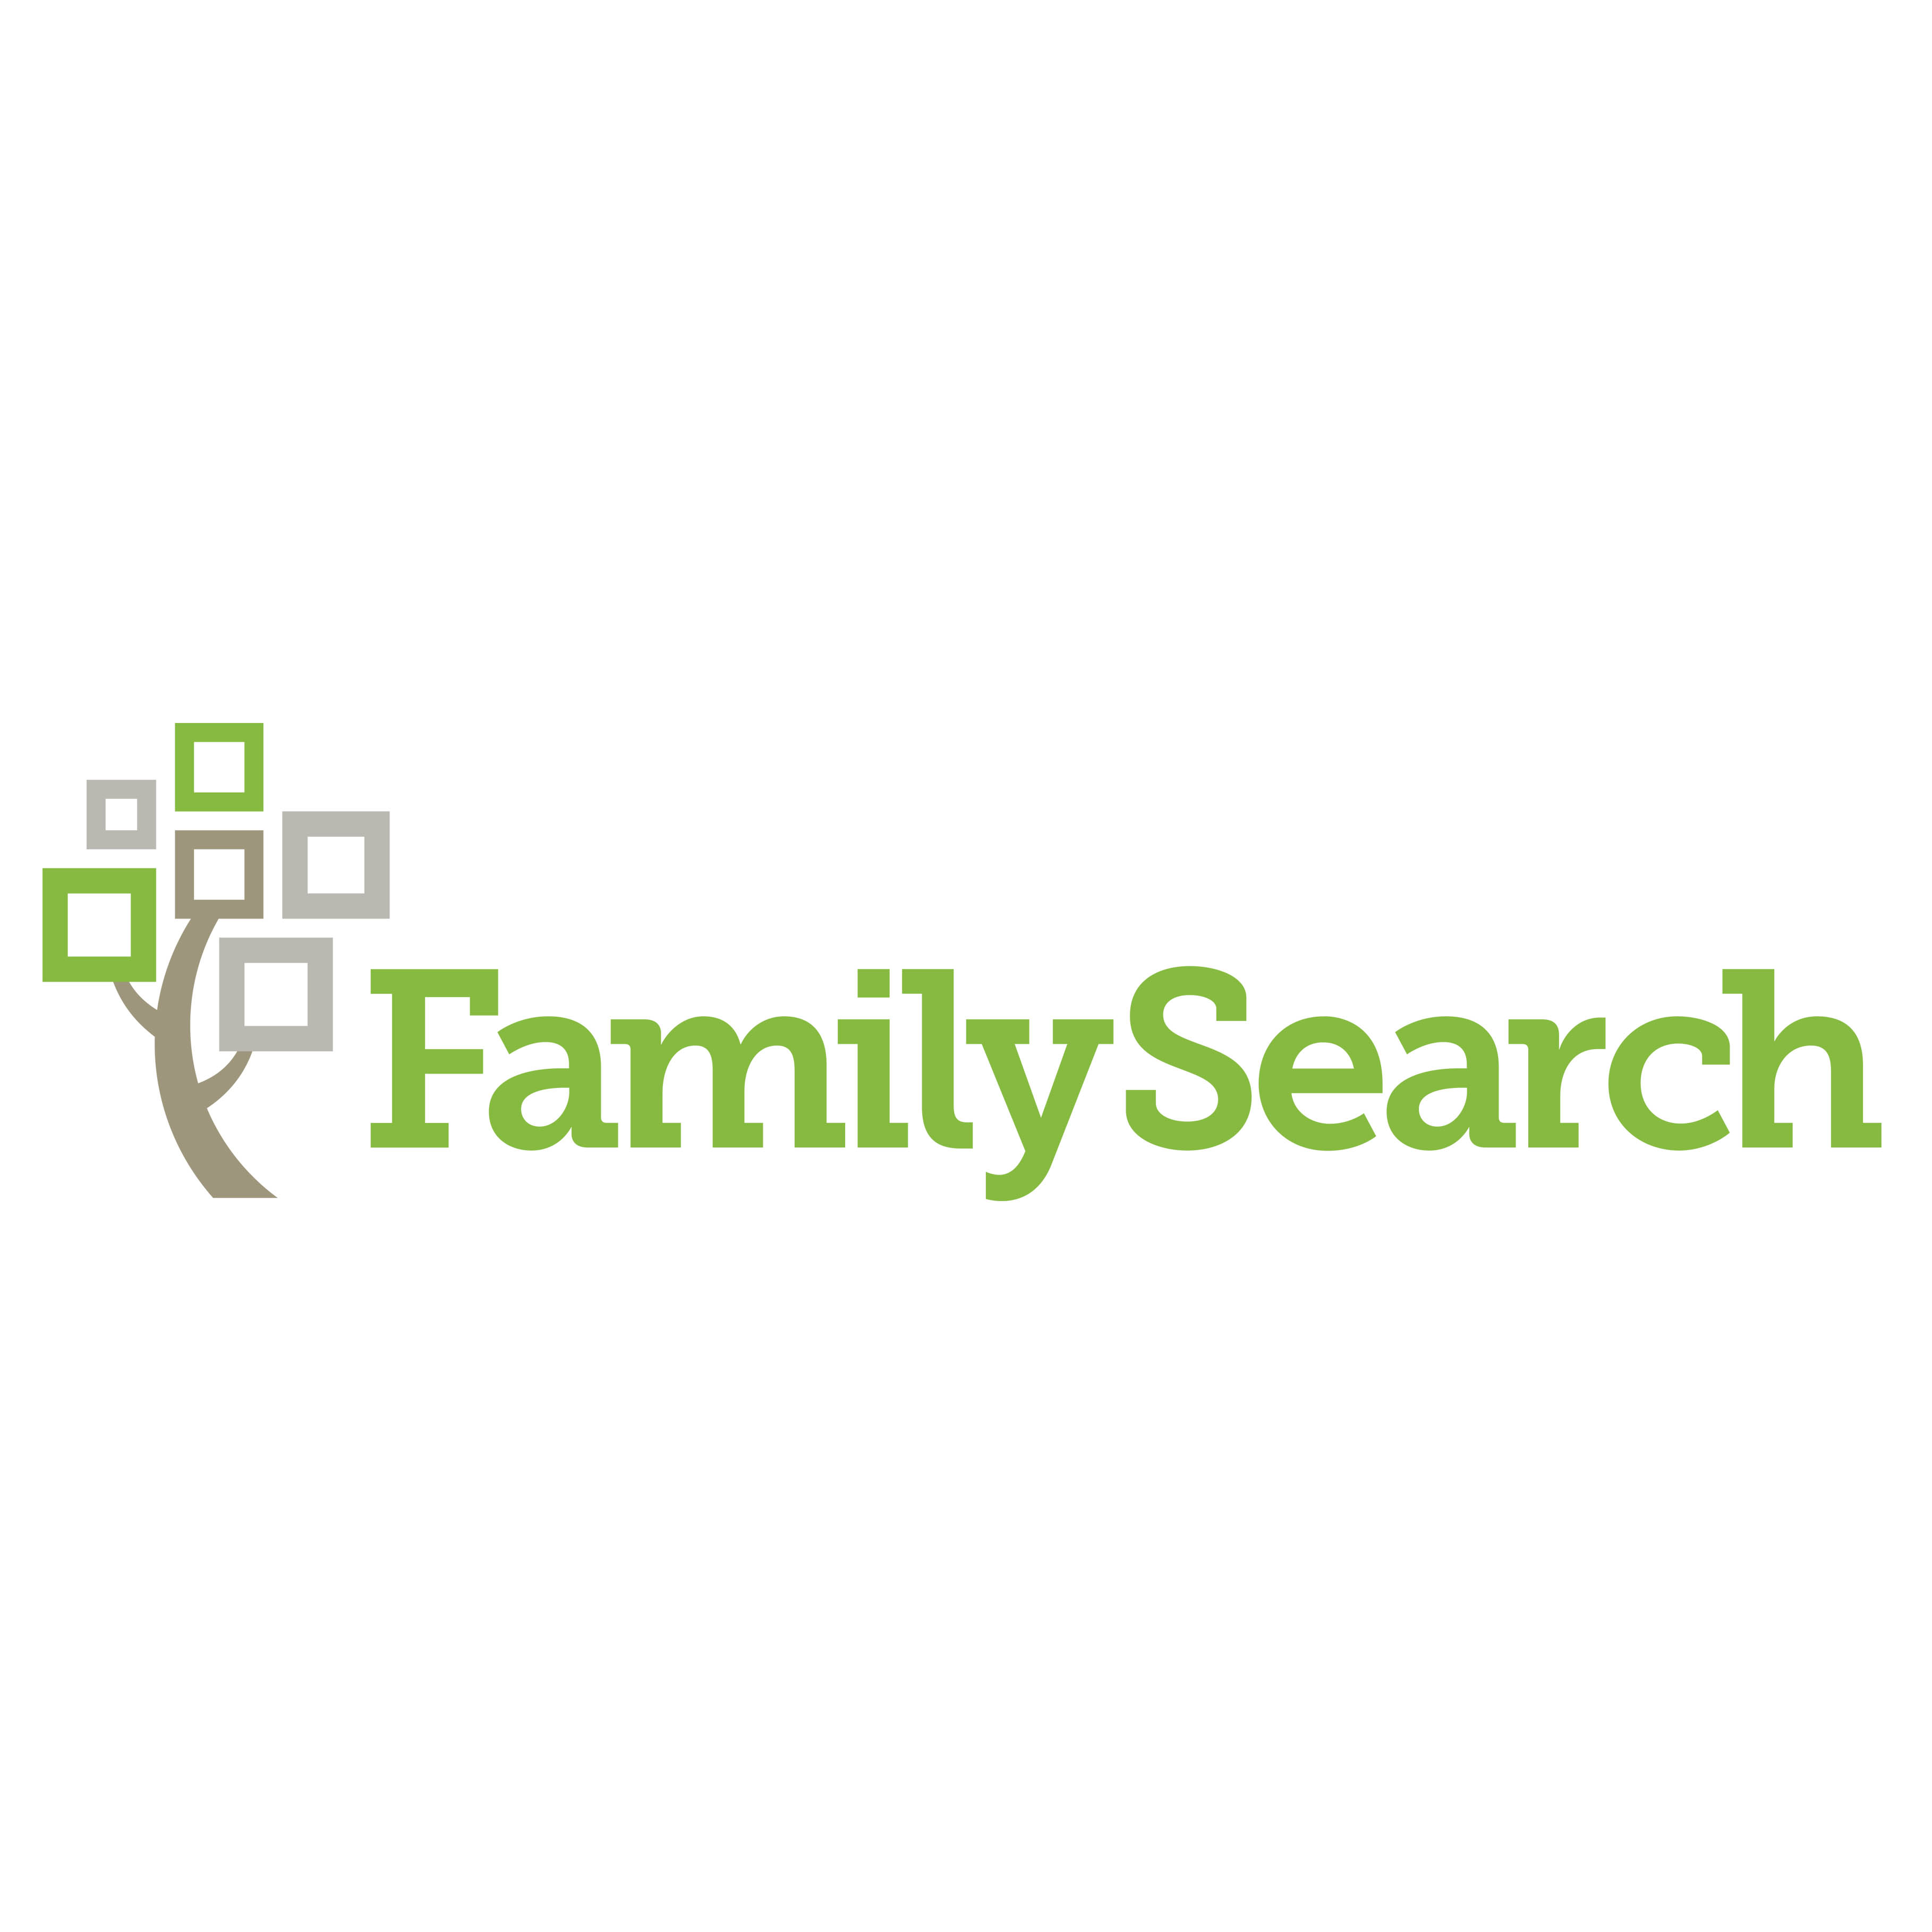 FamilySearch at Mississippi Valley Library District